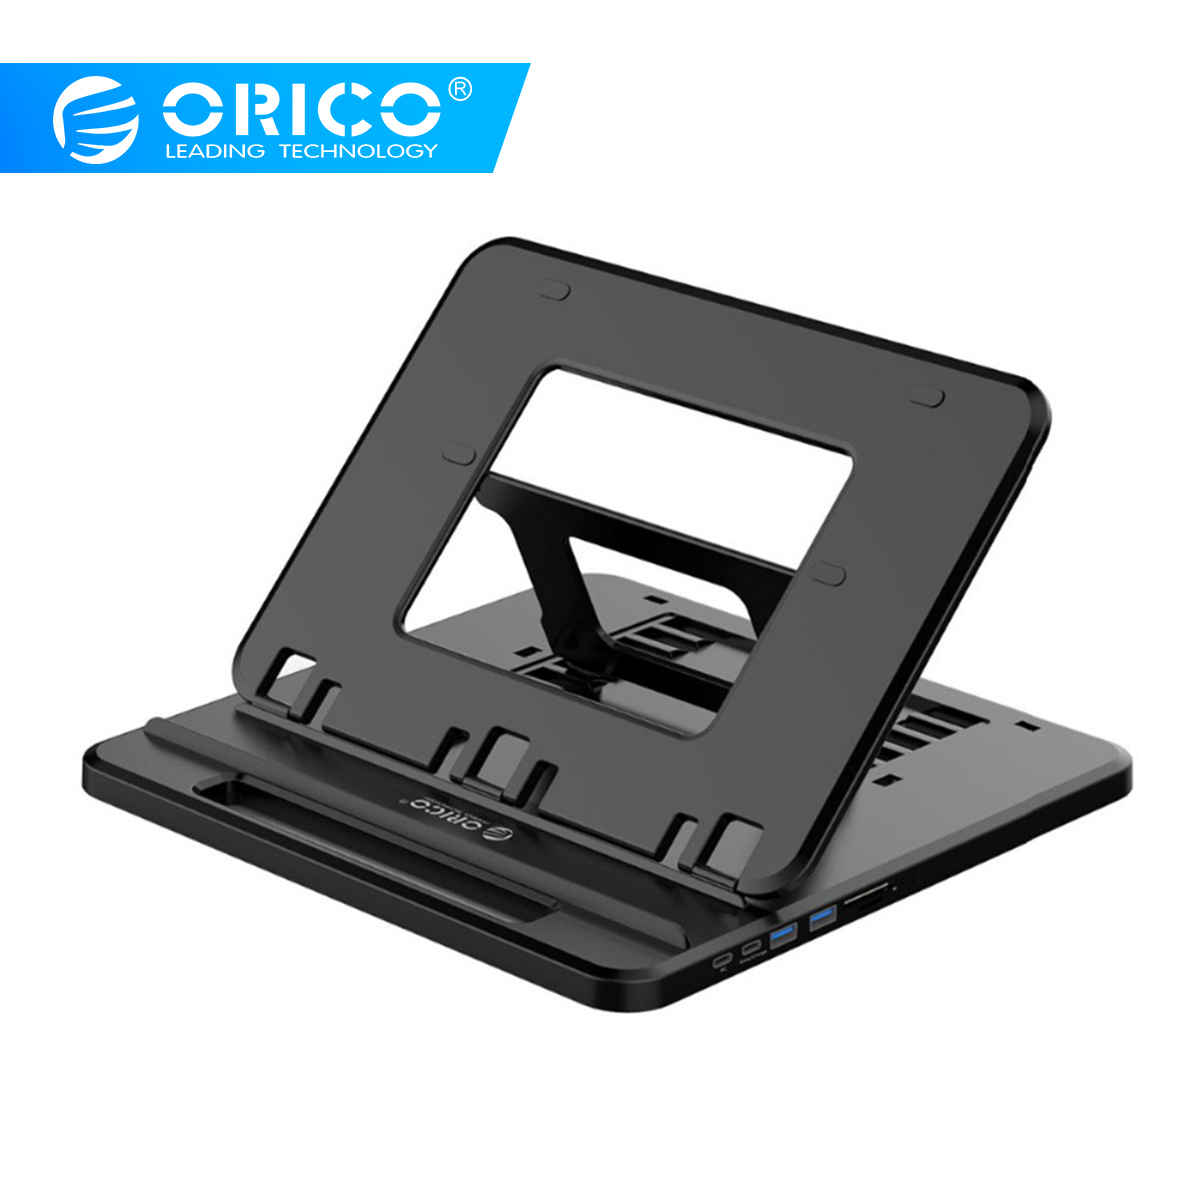 ORICO Tablet Laptop Holder Stand Desk Holder Office For Phone Charge Stand For iPhone Tablets Stand ipad With Type-C SD TFORICO Tablet Laptop Holder Stand Desk Holder Office For Phone Charge Stand For iPhone Tablets Stand ipad With Type-C SD TF